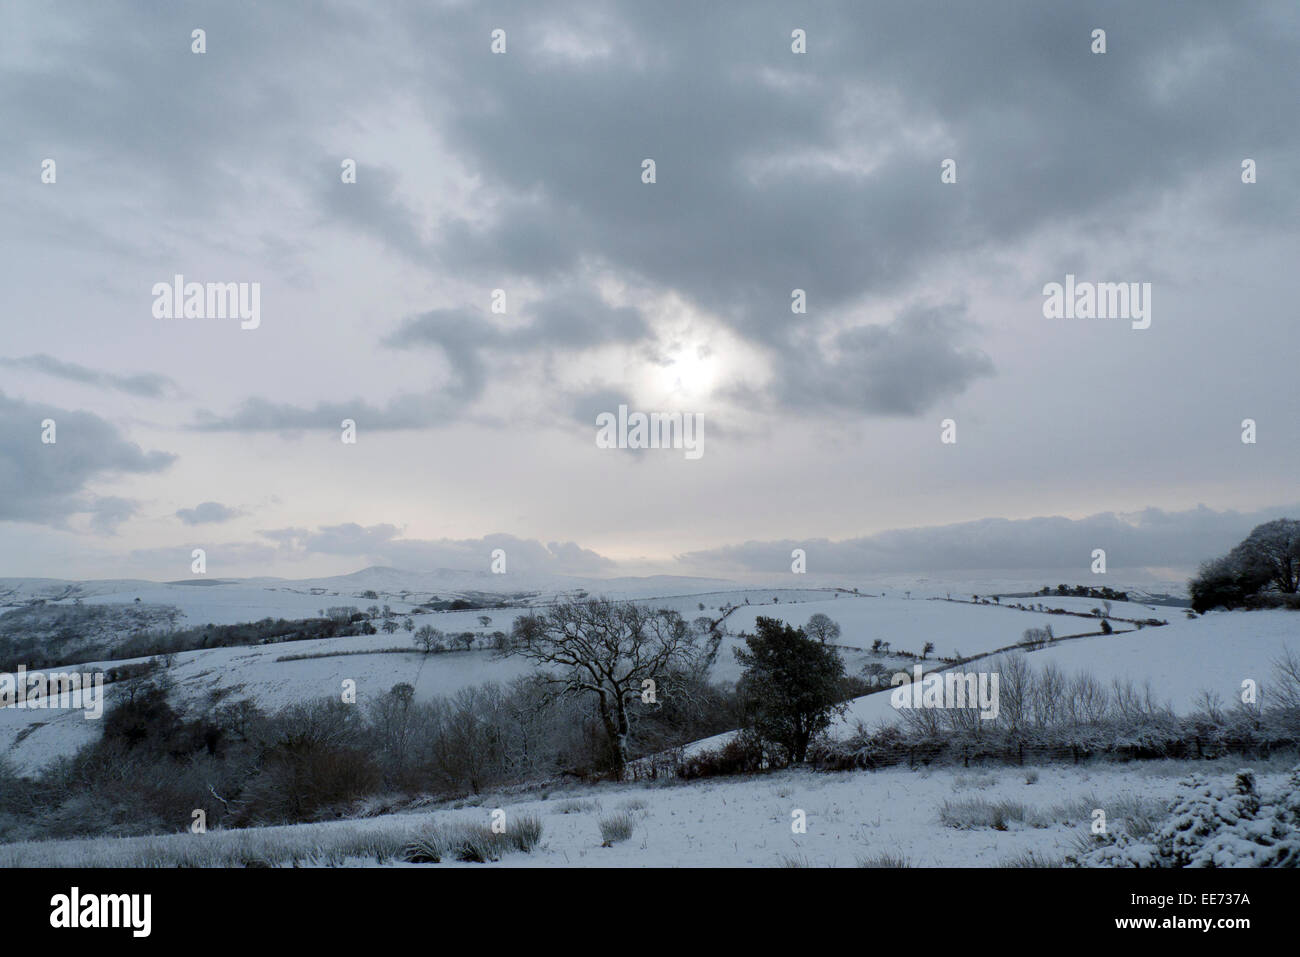 Carmarthenshire, Wales, UK. 14th Jan 2015. Snow fall overnight in Carmarthenshire is greeted by crisp cold weather - Stock Image